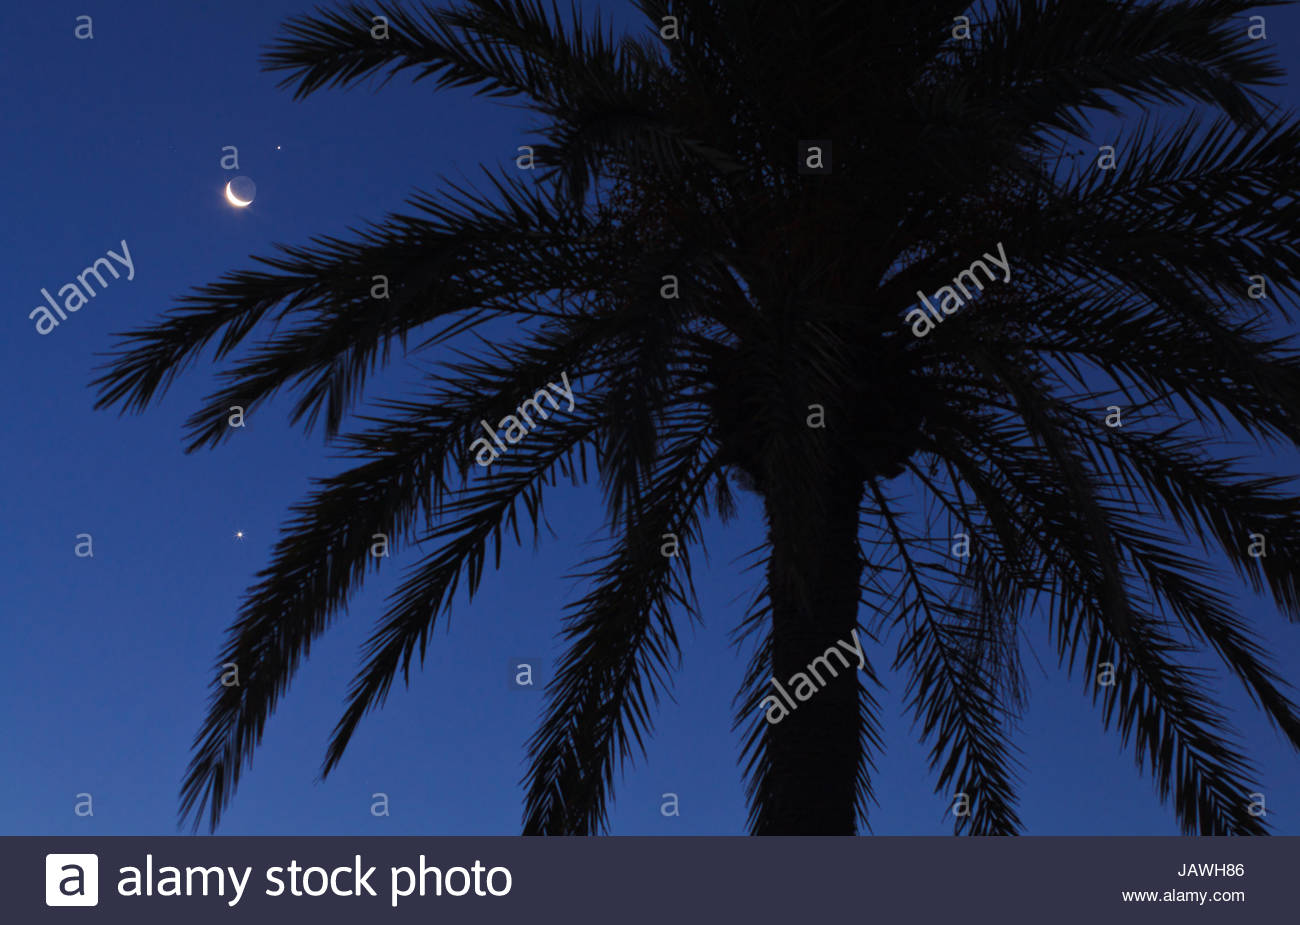 Silhouette of palm trees with crescent moon in Djerba, Tunisia. - Stock Image